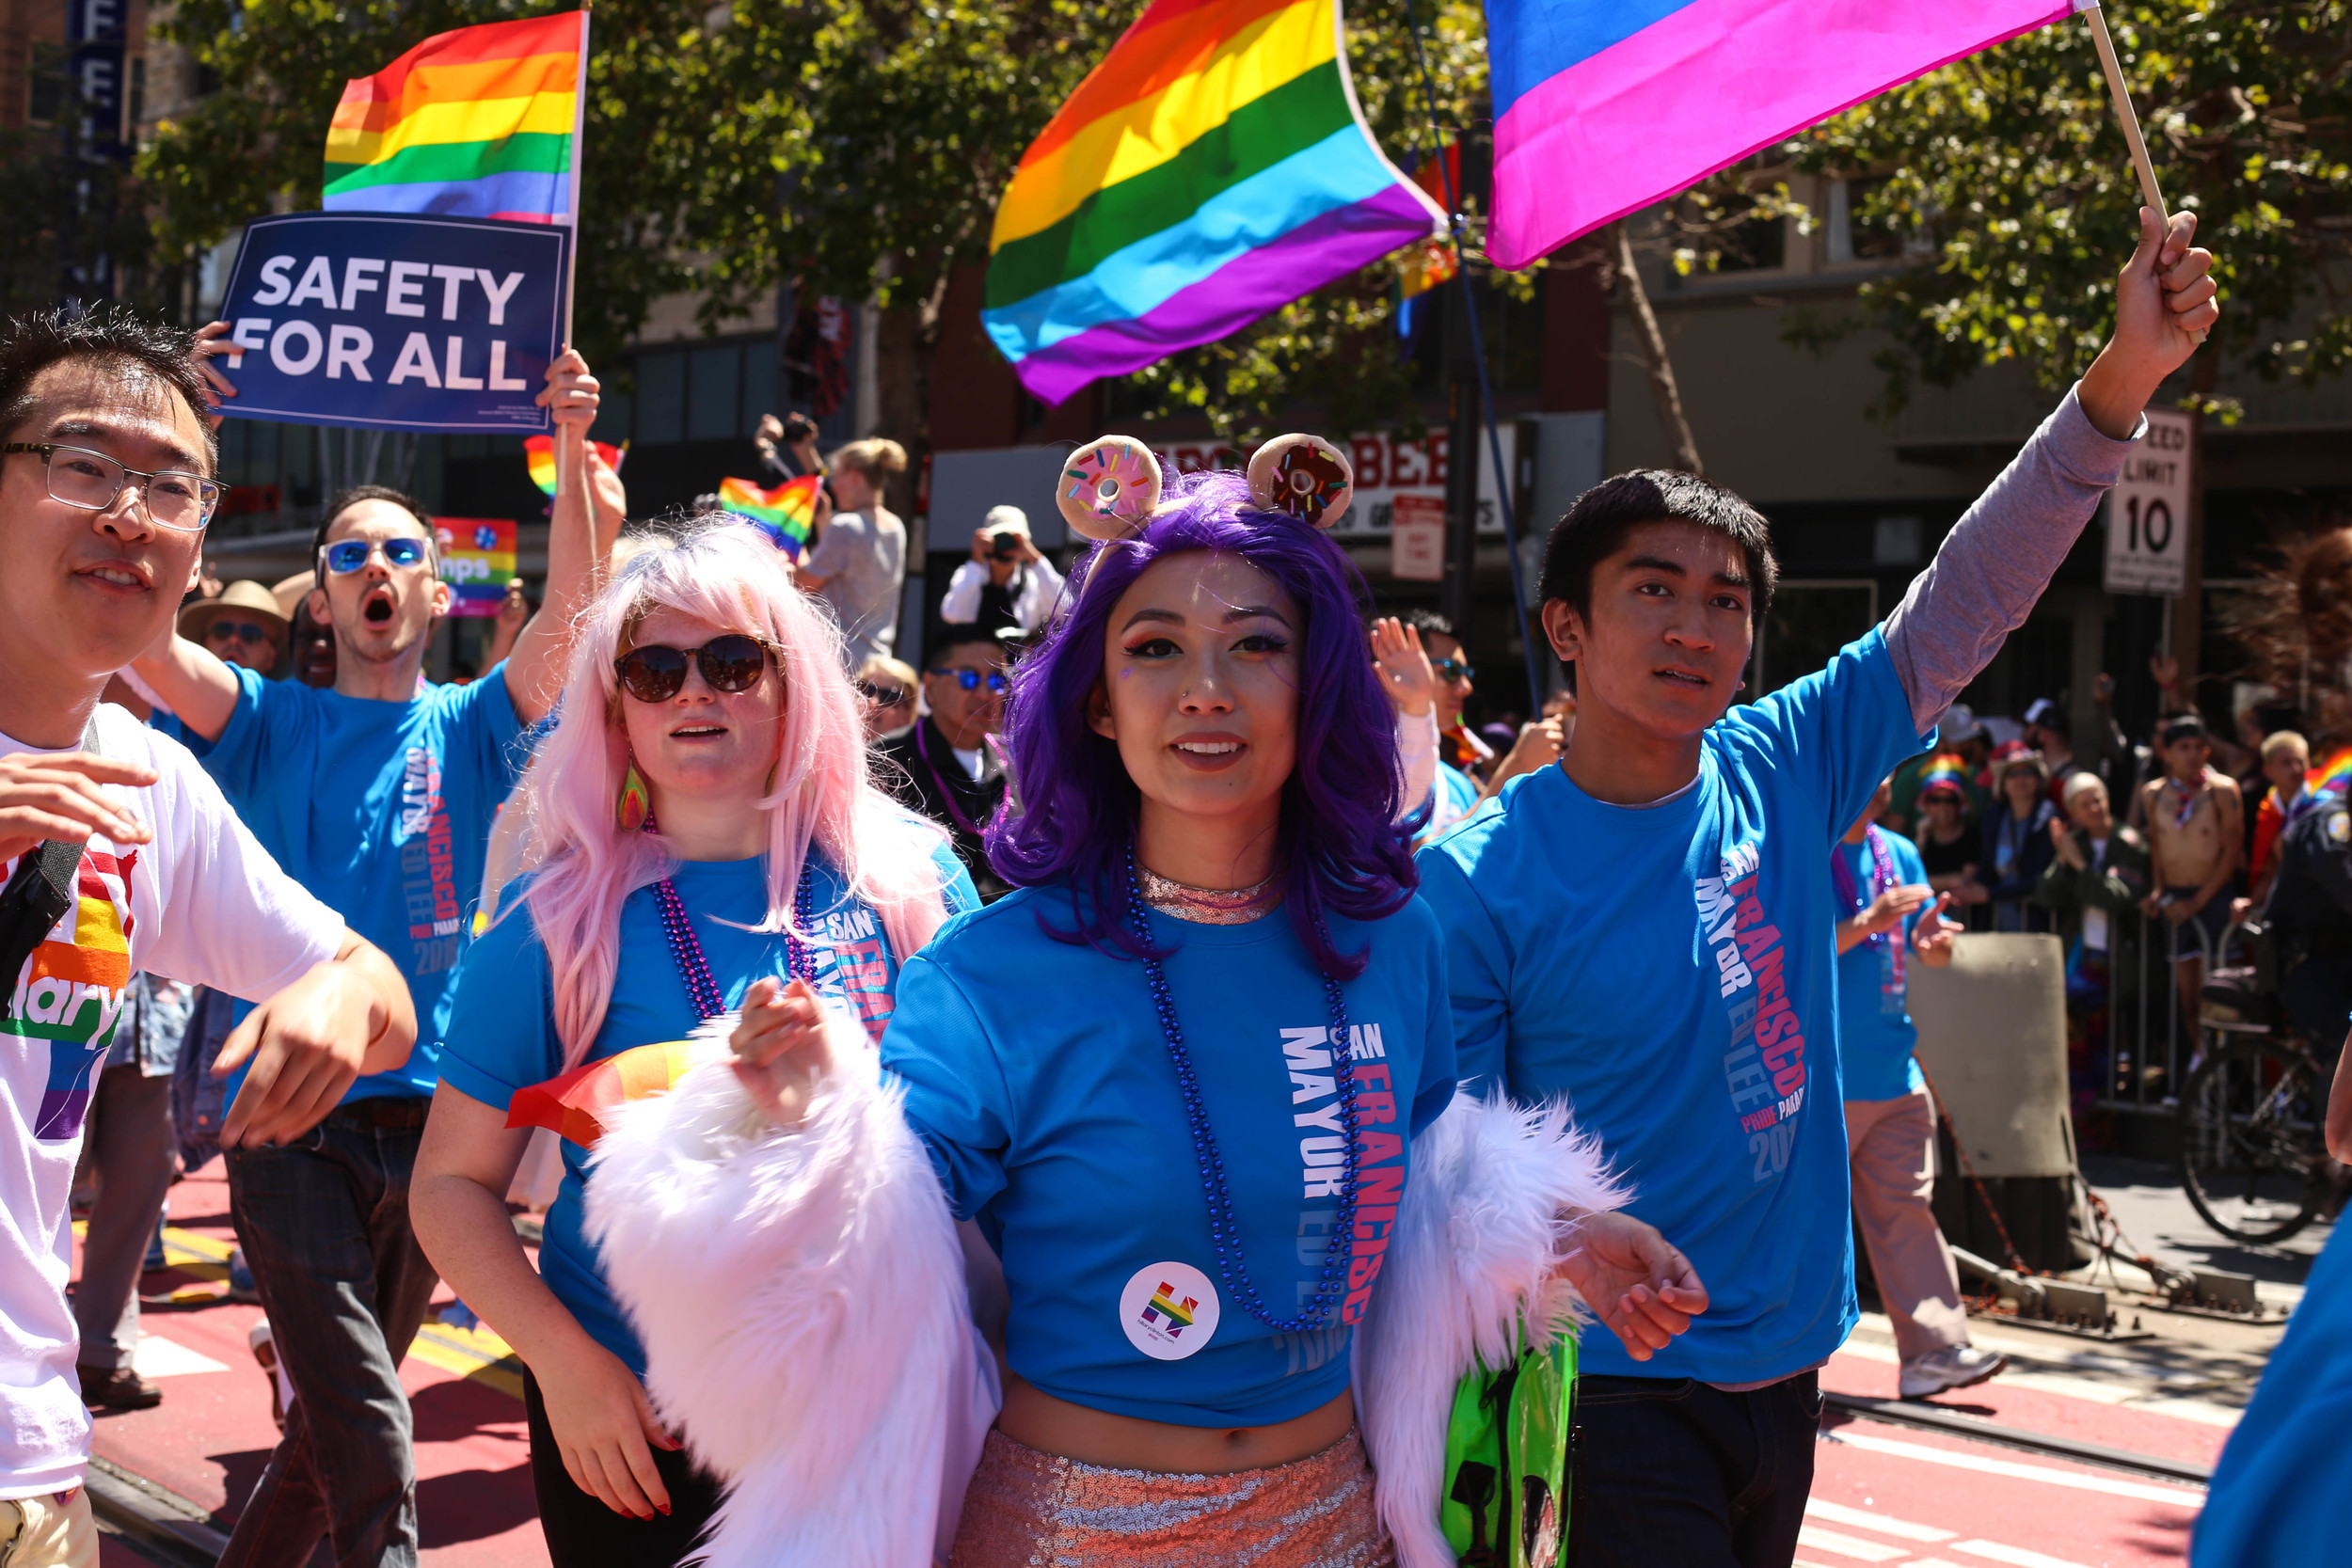 Mayor Ed Lee supporters cheer through the parade to celebrate Pride in San Francisco, Cali on Sunday, June 26, 2016.